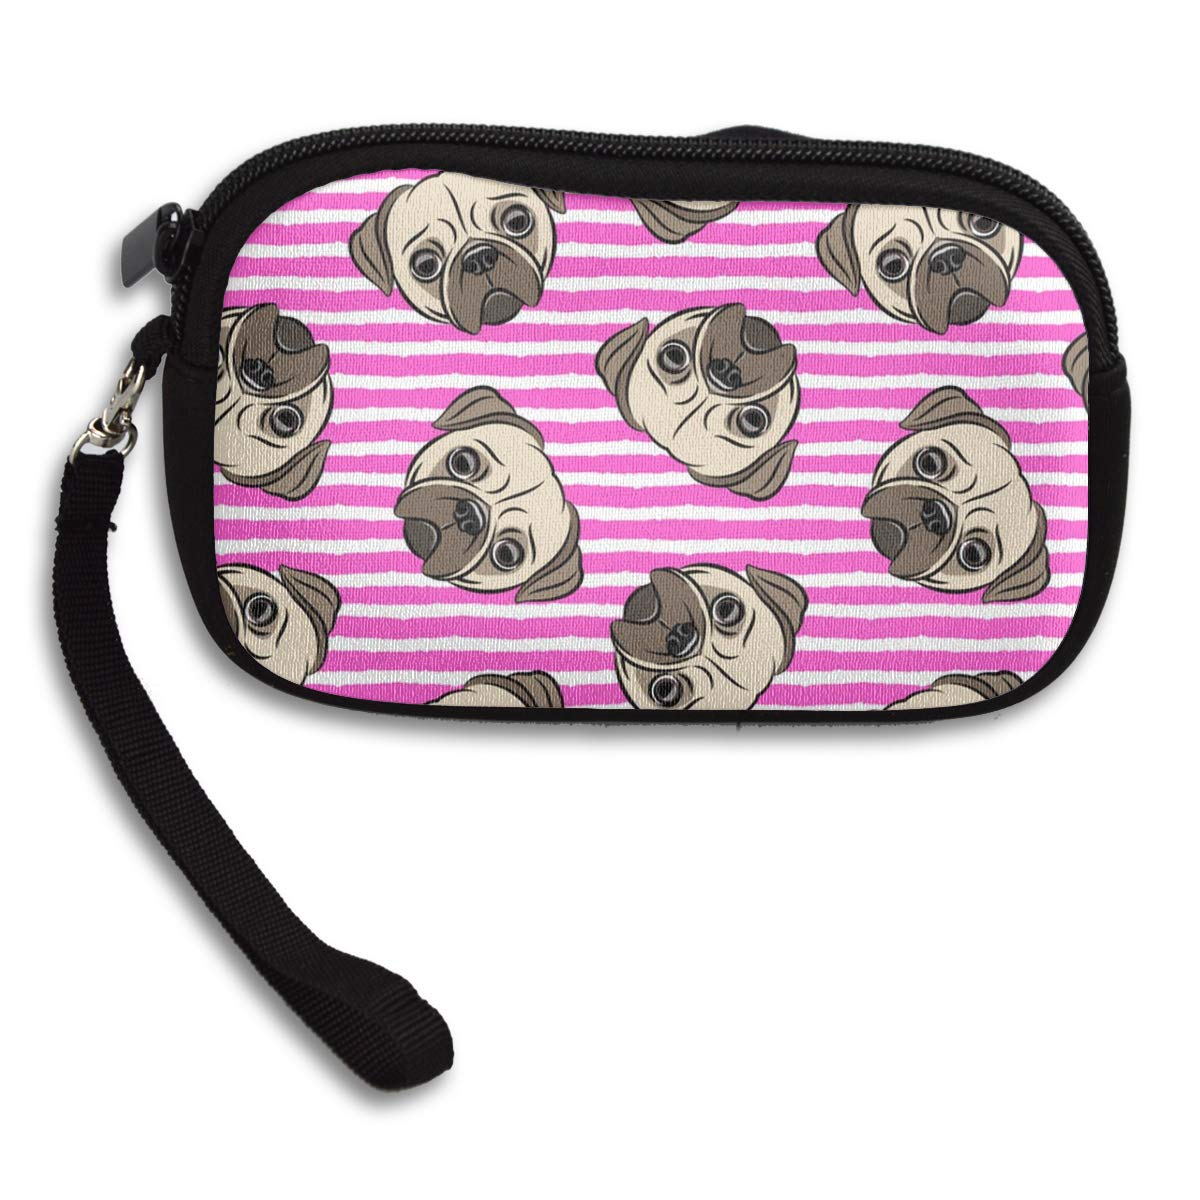 Coin Purse Pug Face Pattern Coin Pouch With Zipper,Make Up Bag,Wallet Bag Change Pouch Key Holder